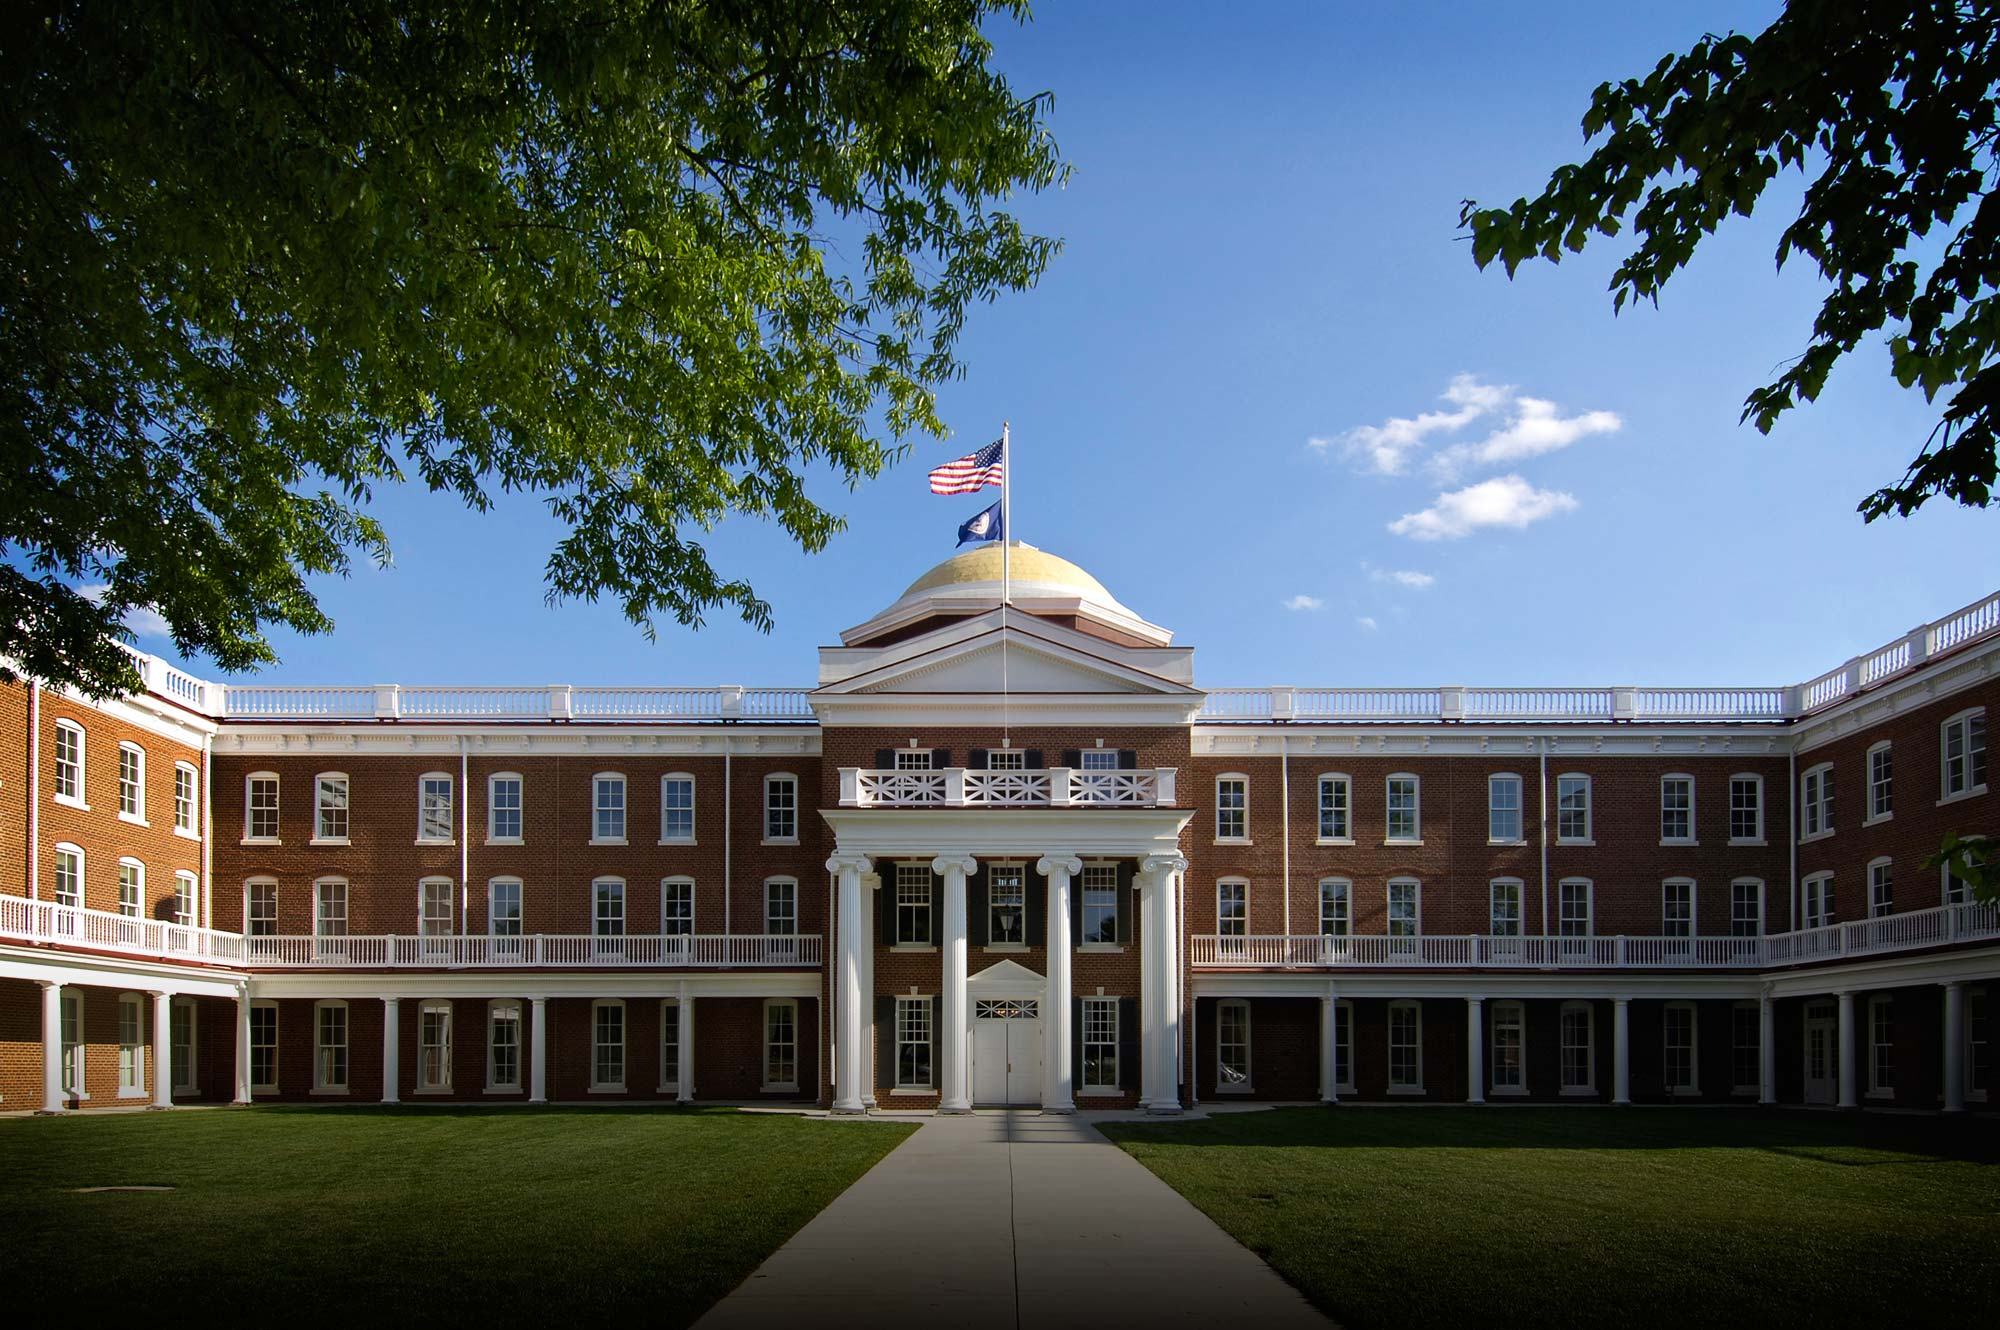 Ruffner Hall reconstructed after being destroyed by fire in 2001